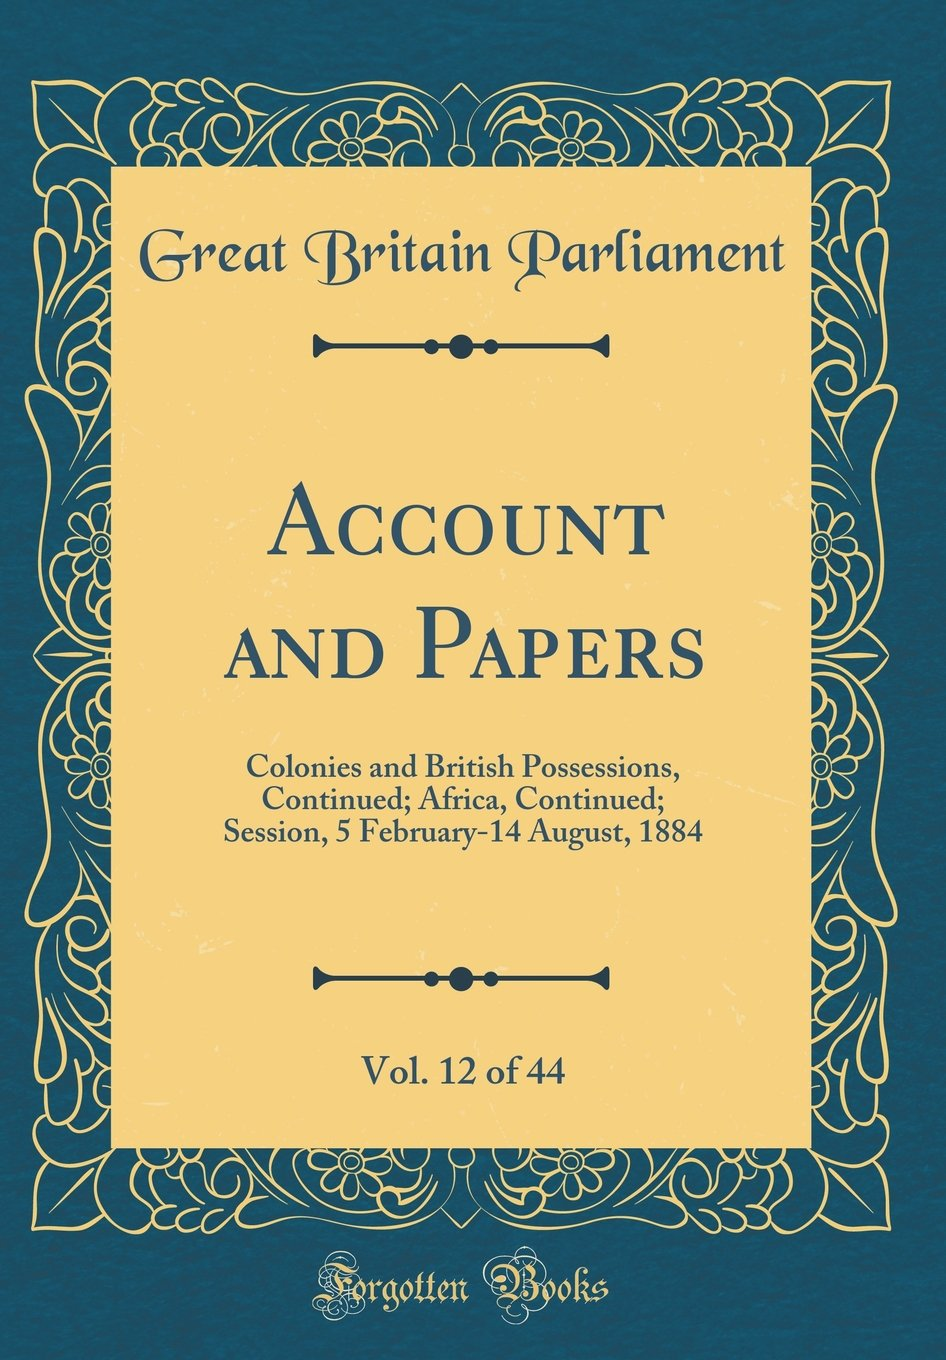 Download Account and Papers, Vol. 12 of 44: Colonies and British Possessions, Continued; Africa, Continued; Session, 5 February-14 August, 1884 (Classic Reprint) pdf